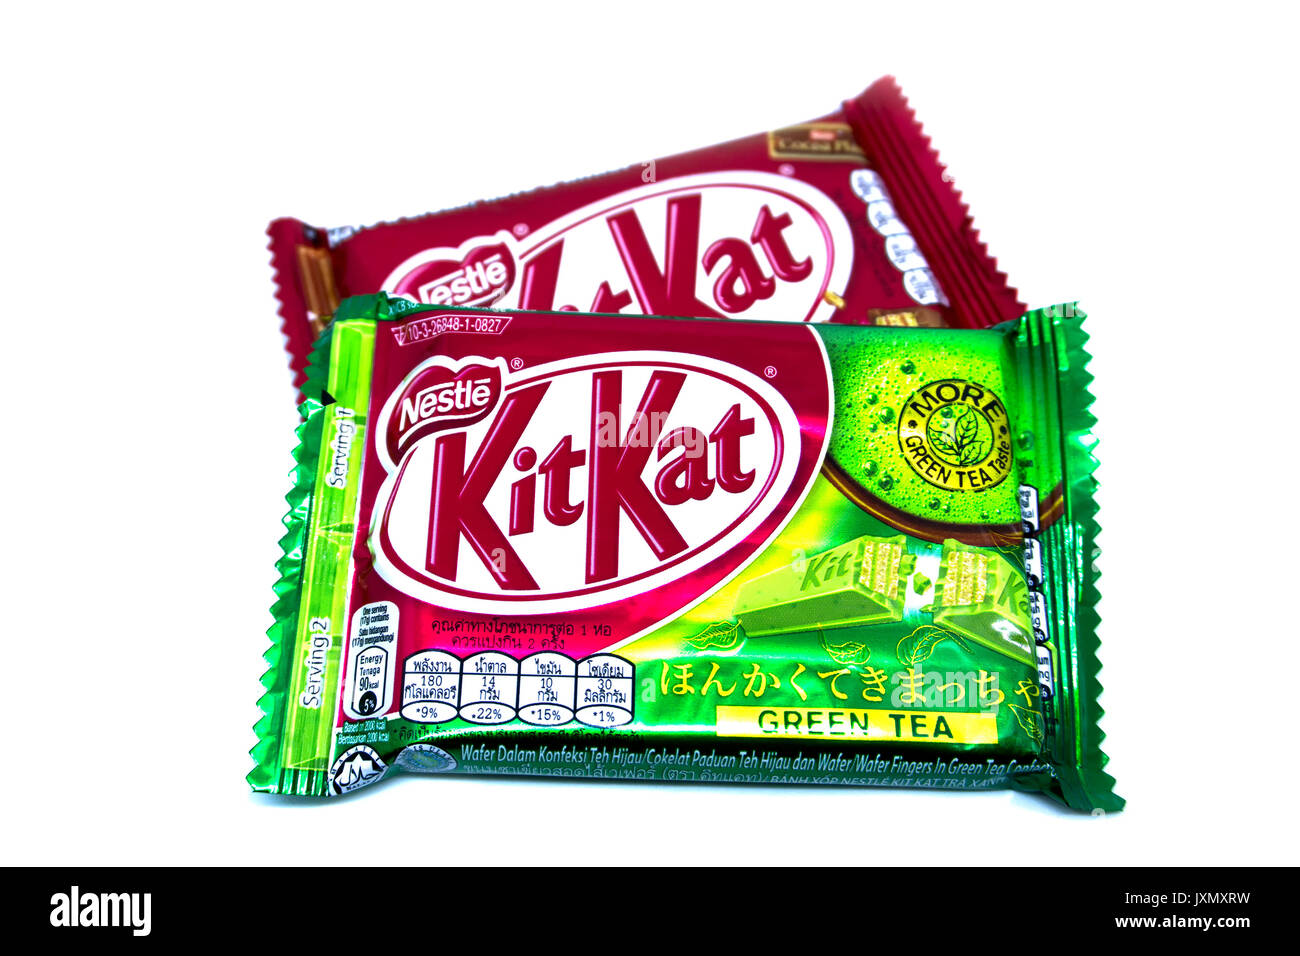 Kota Kinabalu, Malaysia - August 16, 2017: Kit Kat Chocolate Milk Wafer and Green Tea flavored  isolated on white background. Kit Kat bars are produce - Stock Image